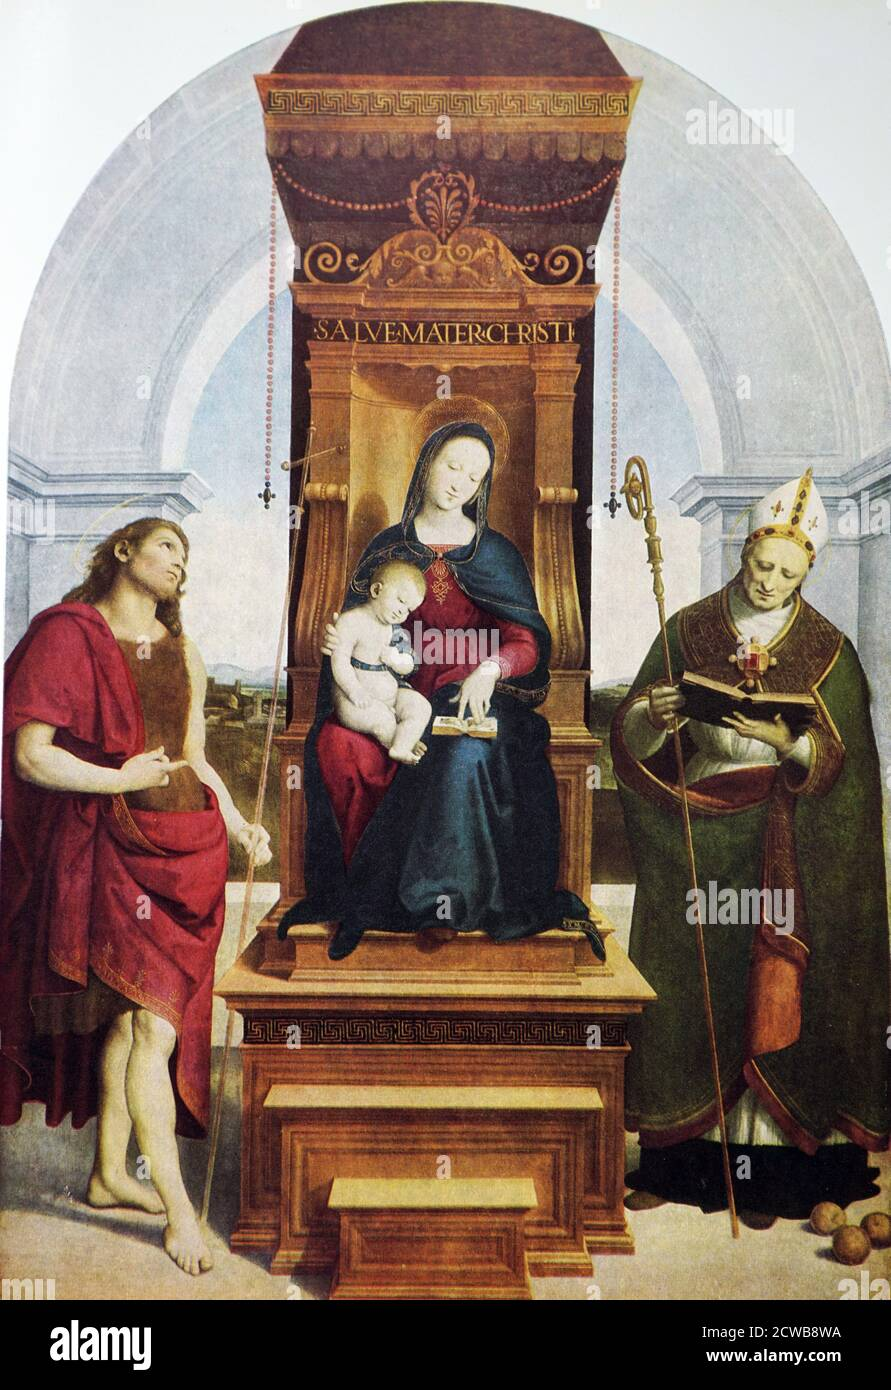 Painting titled 'The Ansidei Madonna' by Raphael. Raffaello Sanzio da Urbino (1483-1520) an Italian painter and architect of the High Renaissance. Stock Photo